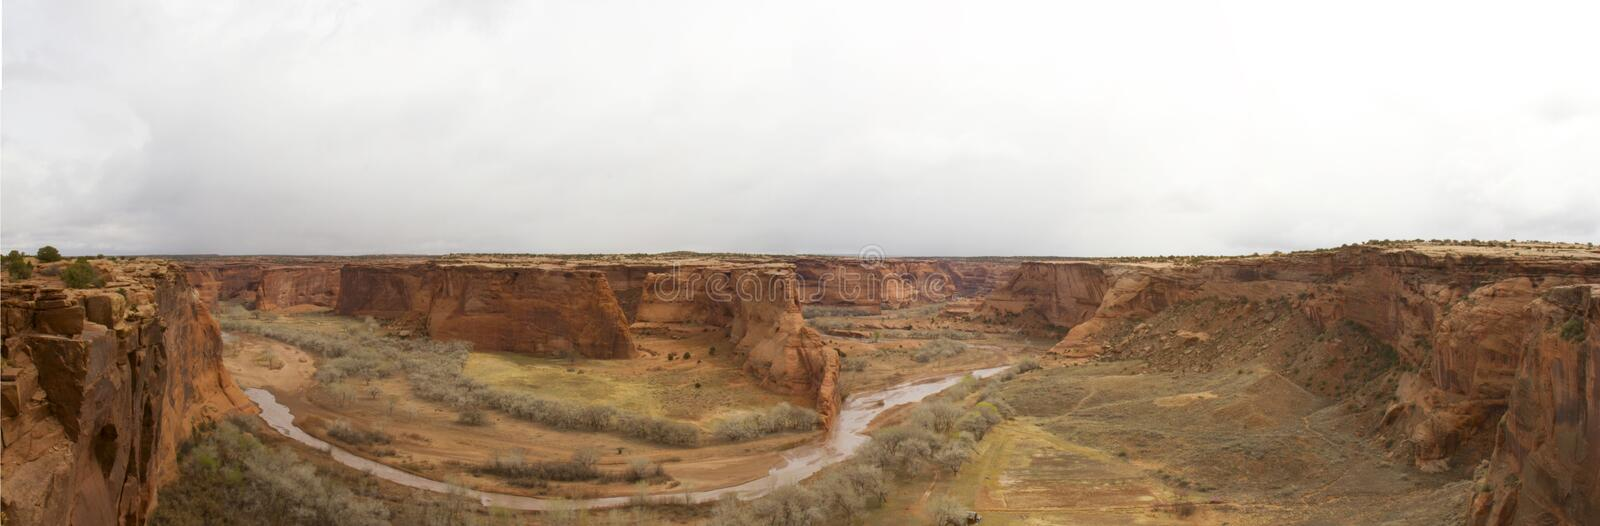 Download Panorama Canyon de Chelly stock image. Image of monument - 31528403